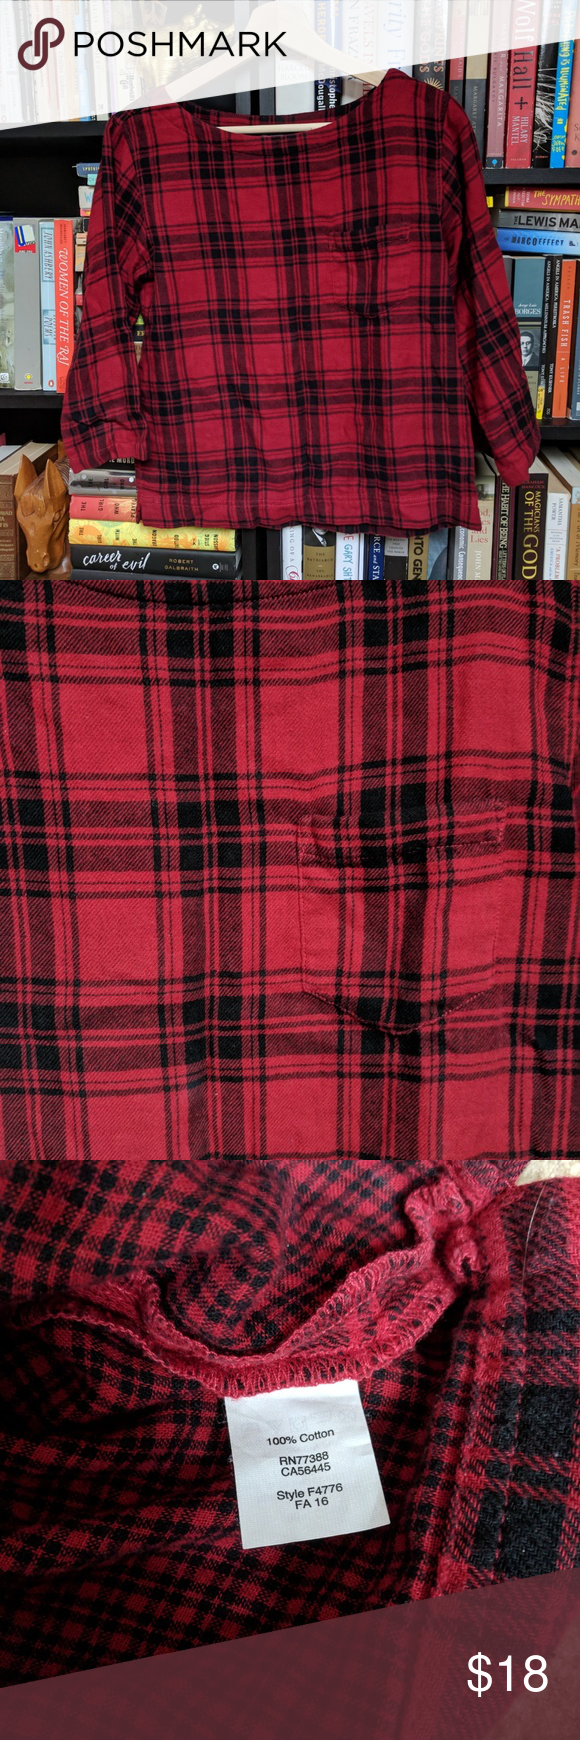 Red flannel 2018  Madewell Flannel Top in   My Posh Picks  Pinterest  Madewell